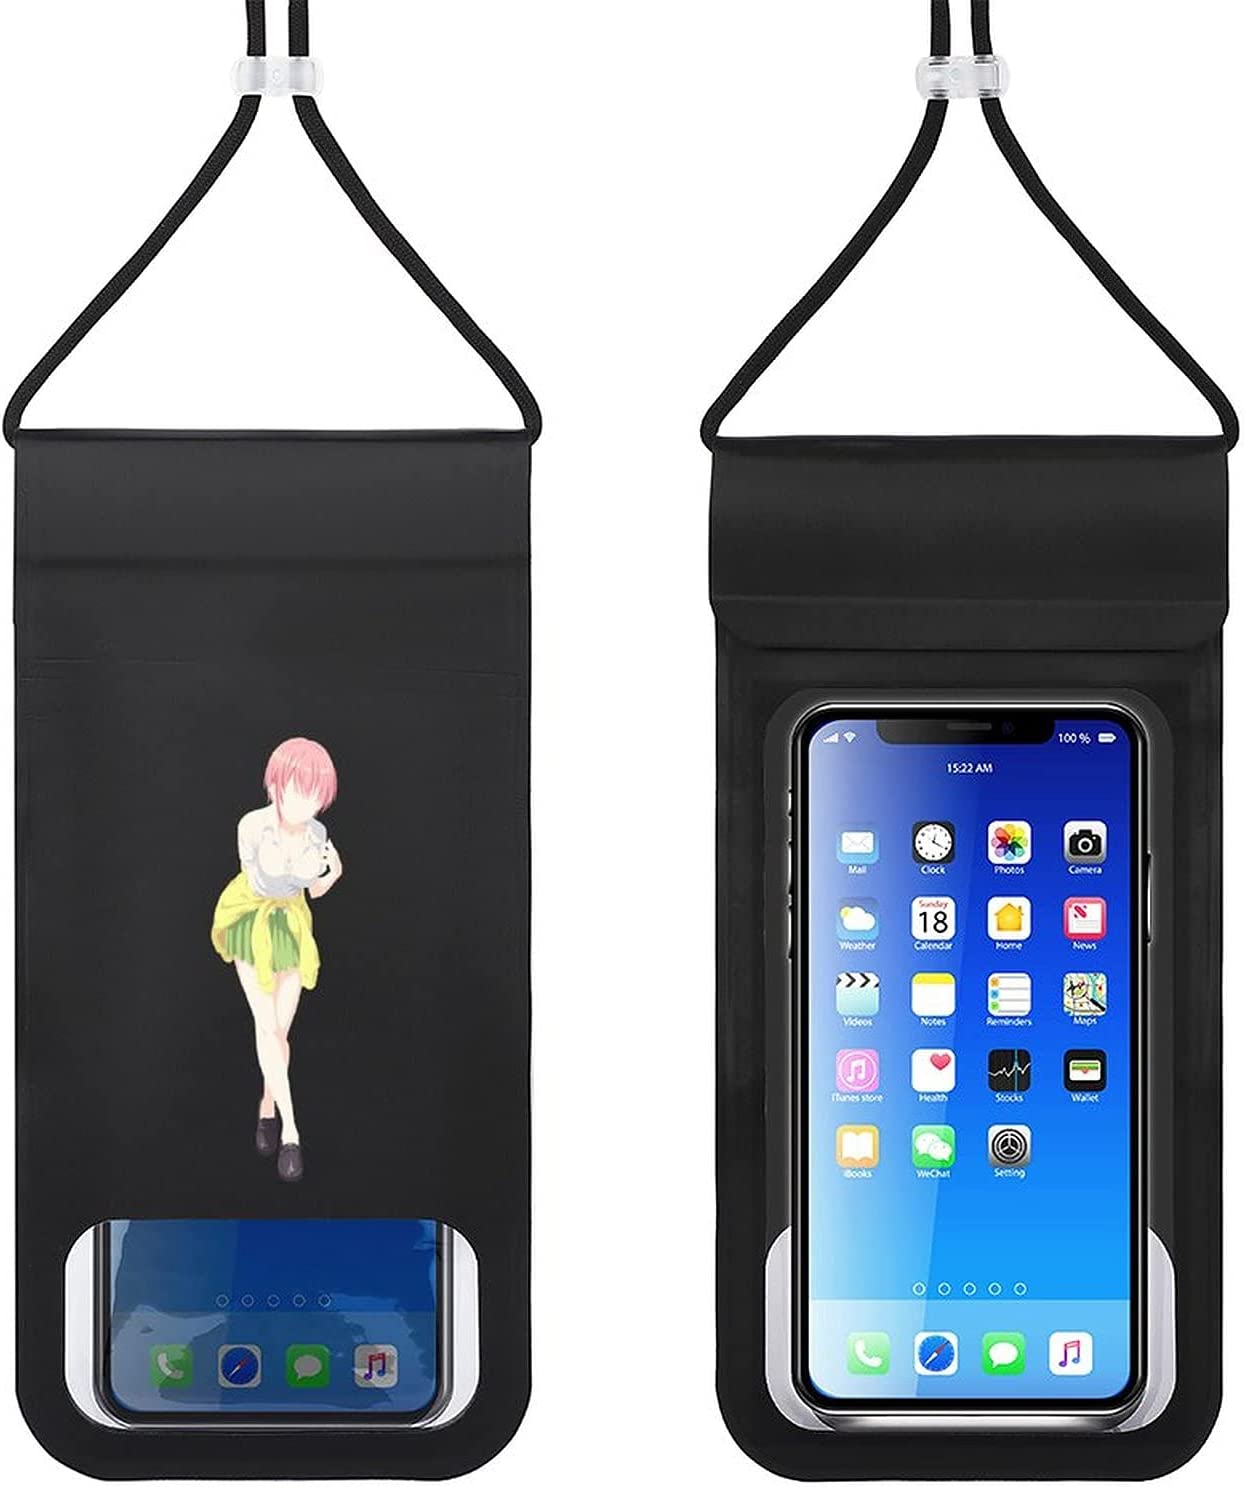 The Quintessential Quintuplets Waterproof Phone Pouch Cellphone Dry Bag Suitable for Smartphones Up to 6.5 Inches Beach, Fishing, Swimming, Boating